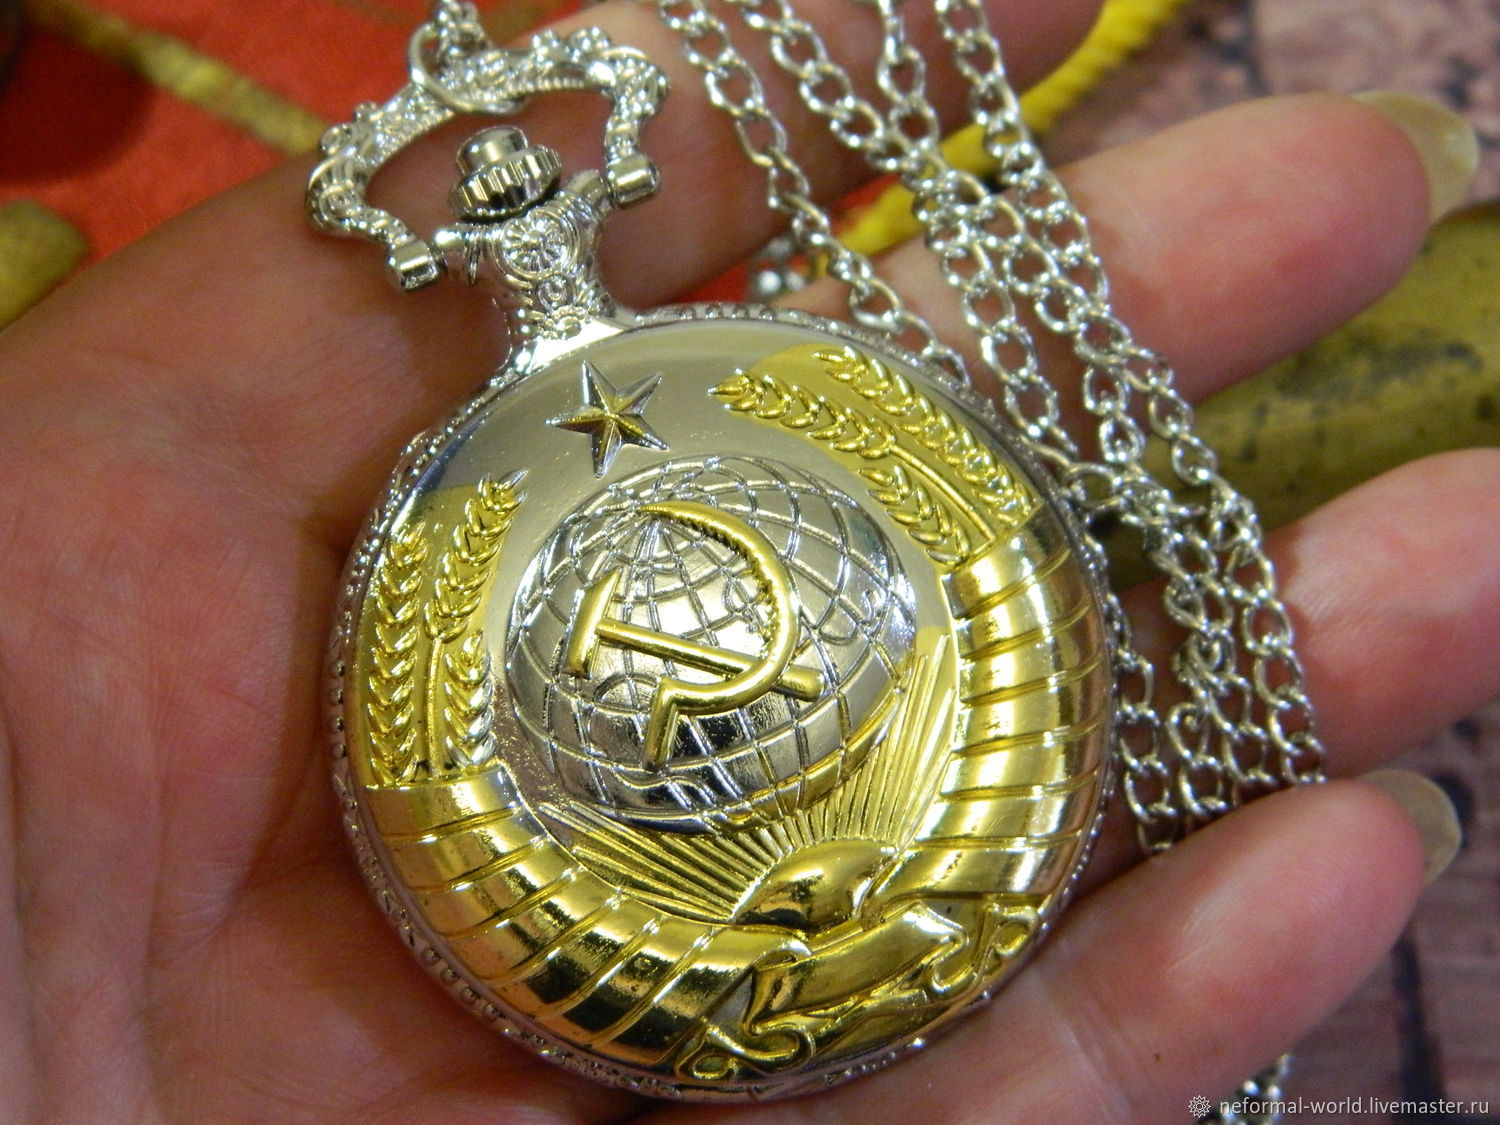 SOVIET-STYLE 'UNION UNBREAKABLE' POCKET WATCH, Watch medallion, Saratov,  Фото №1